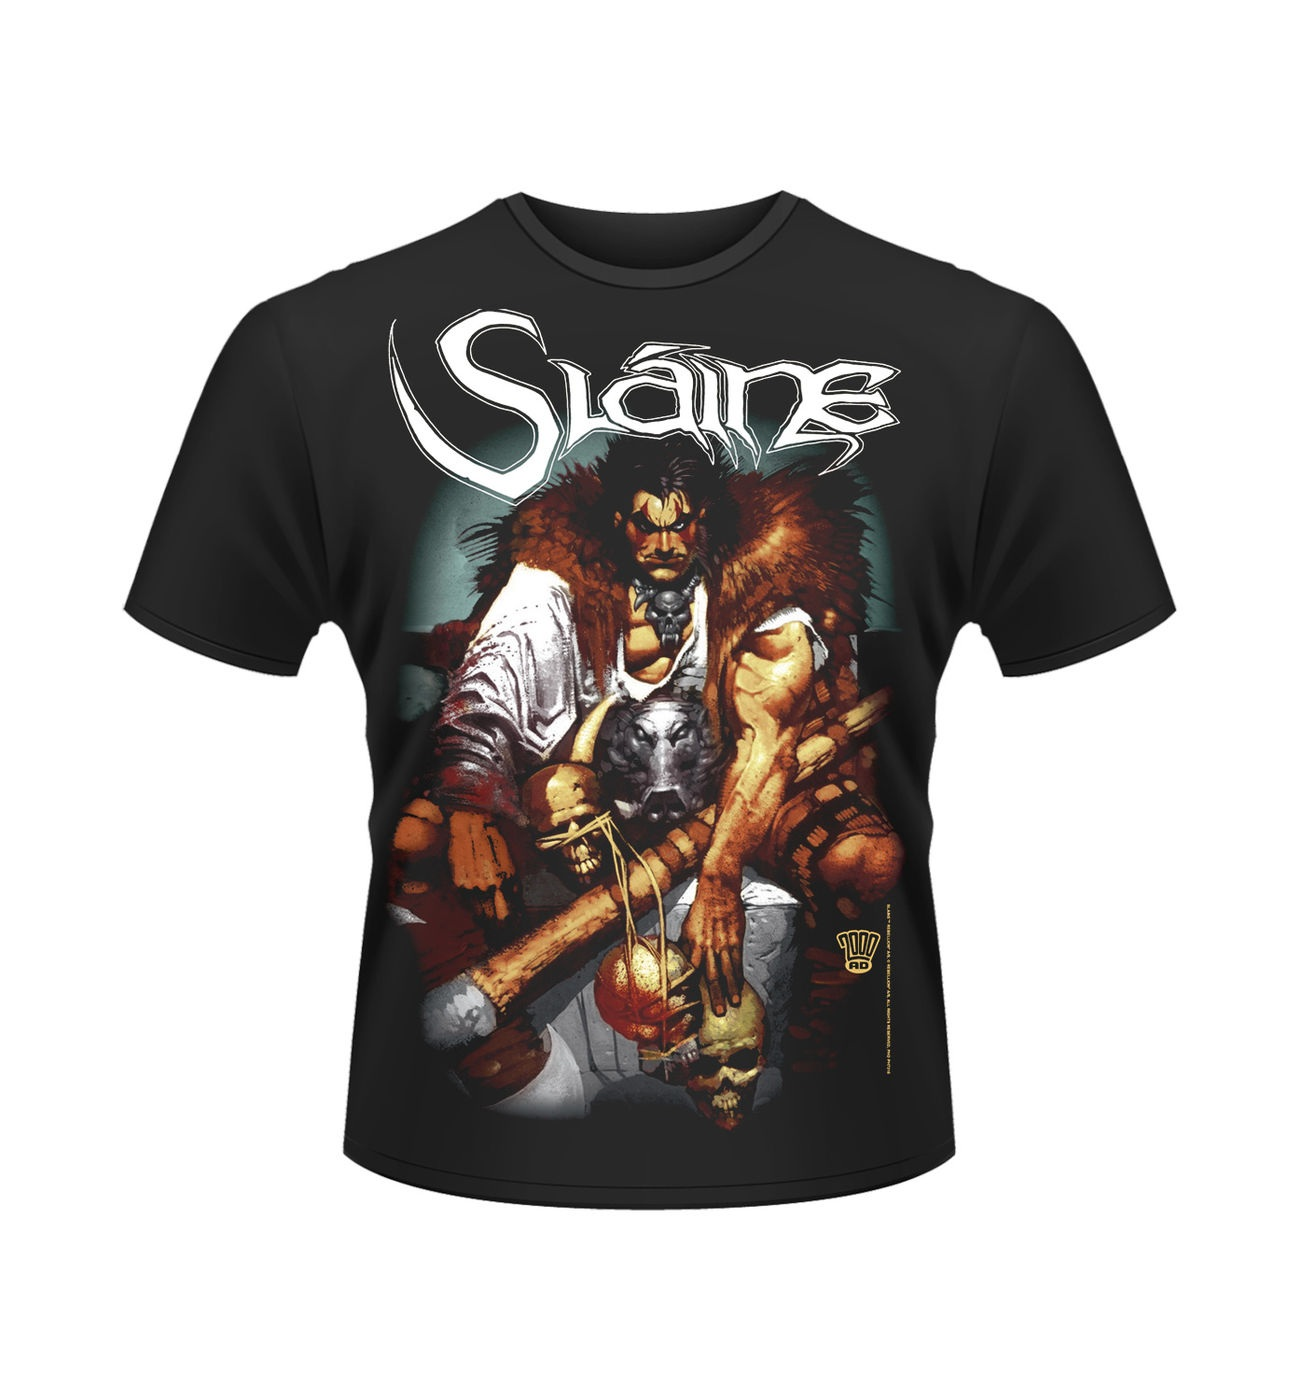 OFFICIAL 2000AD Slaine t-shirt